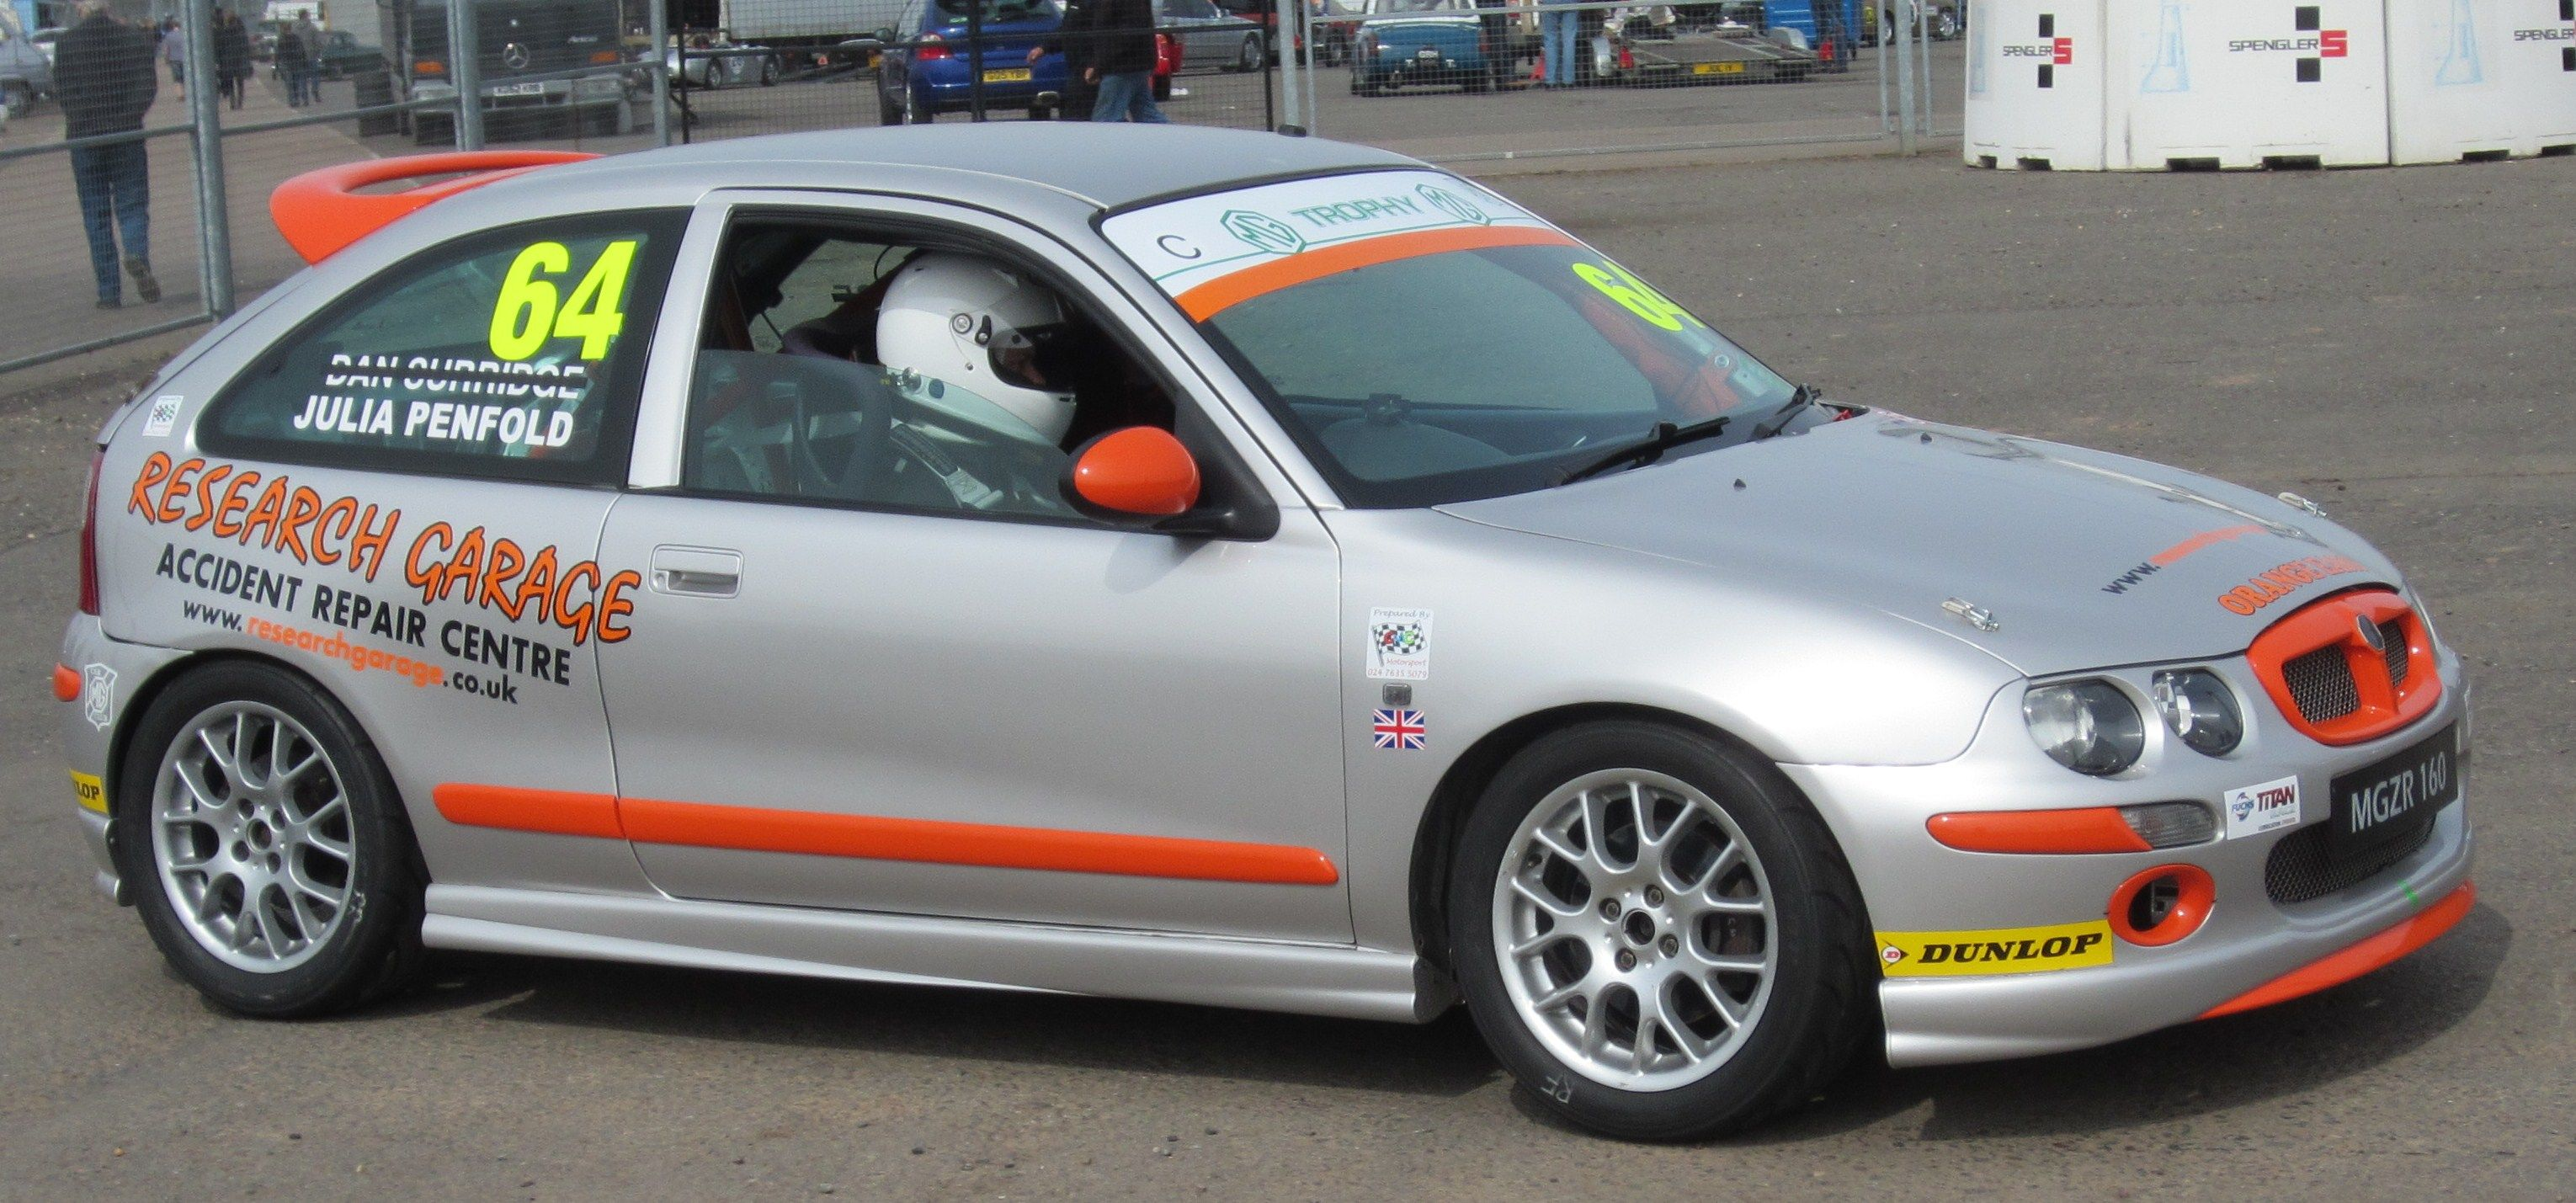 MG Trophy Championship, Donington Park, 7th April 2013.